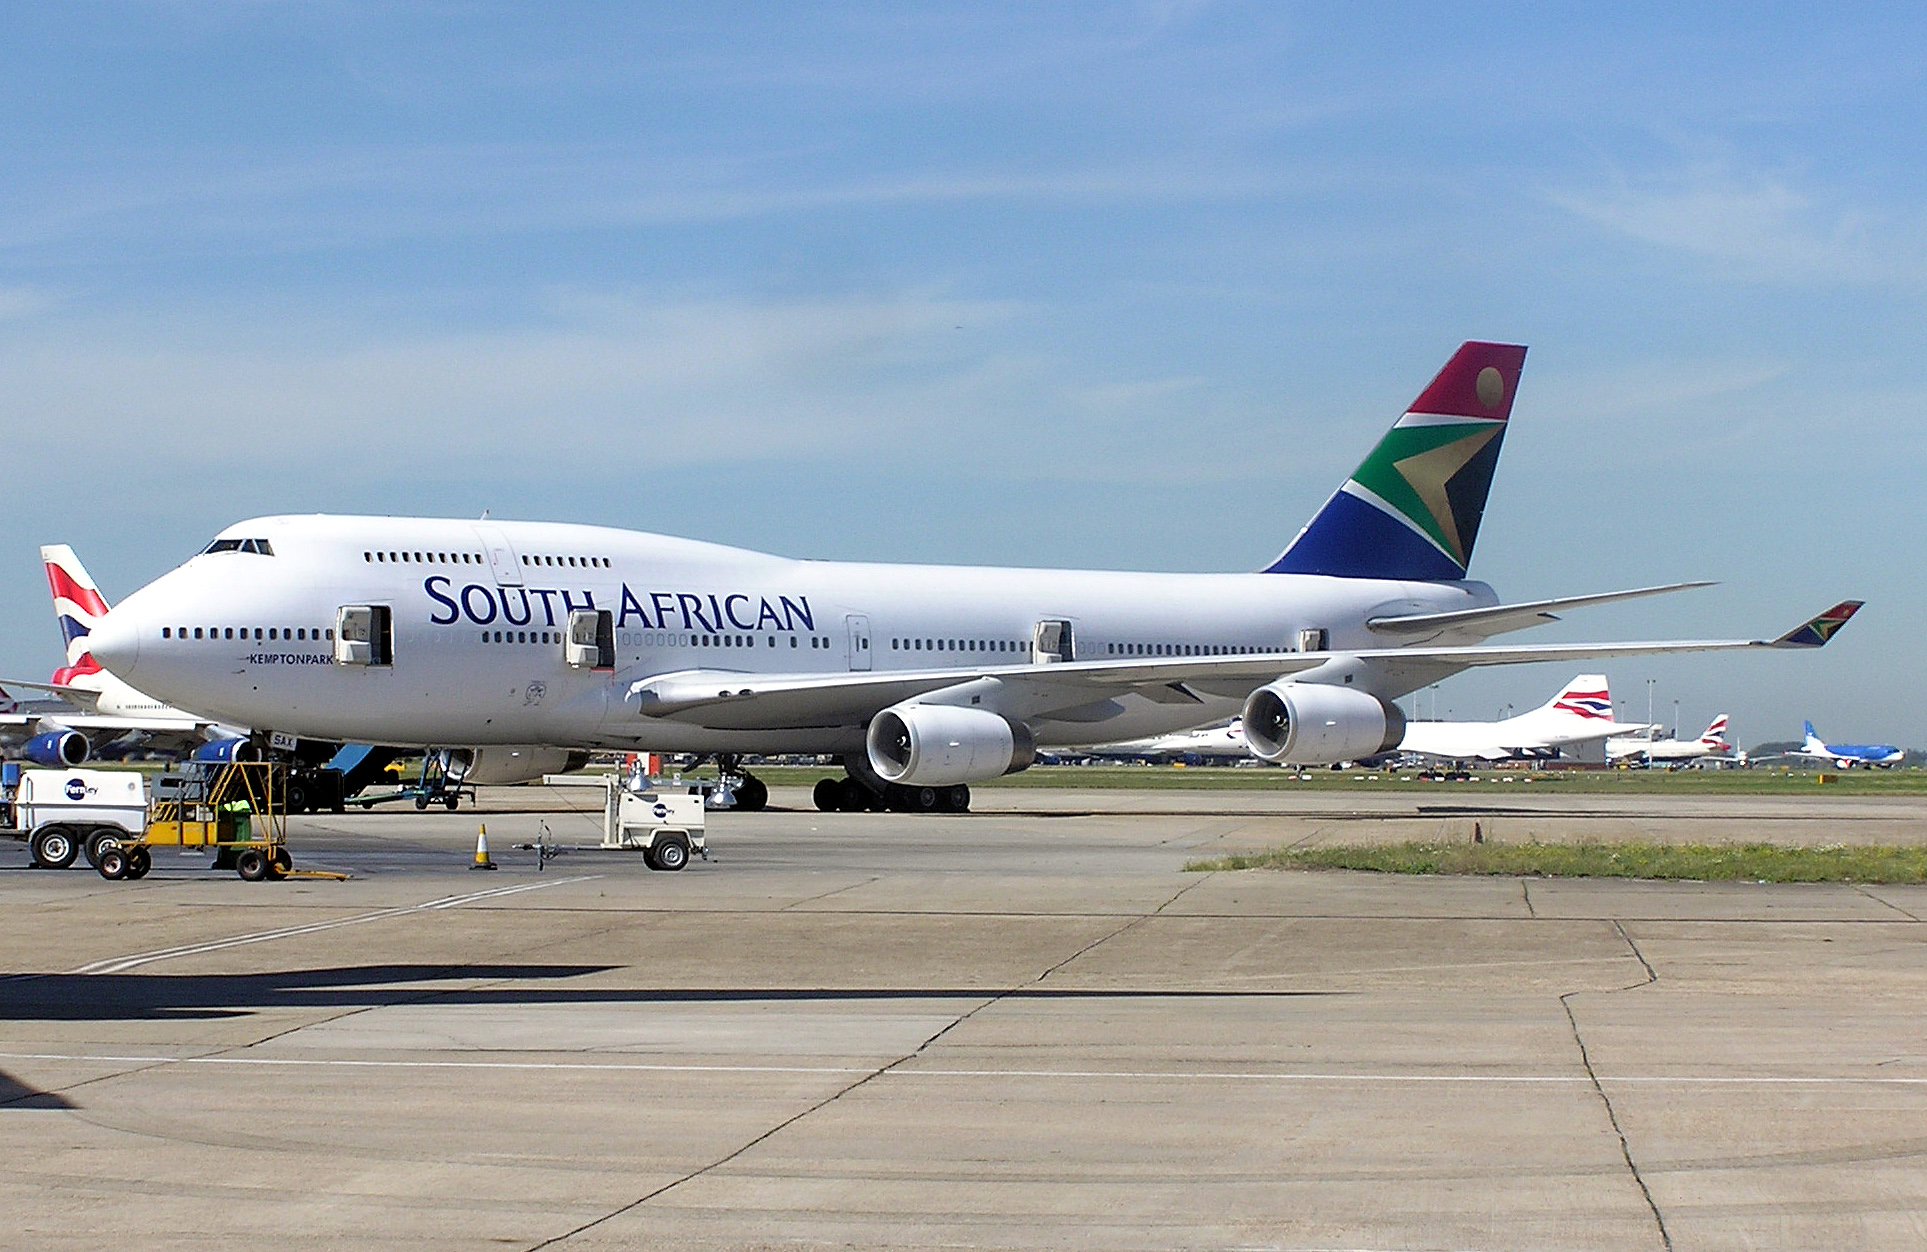 South African Airways Aircraft